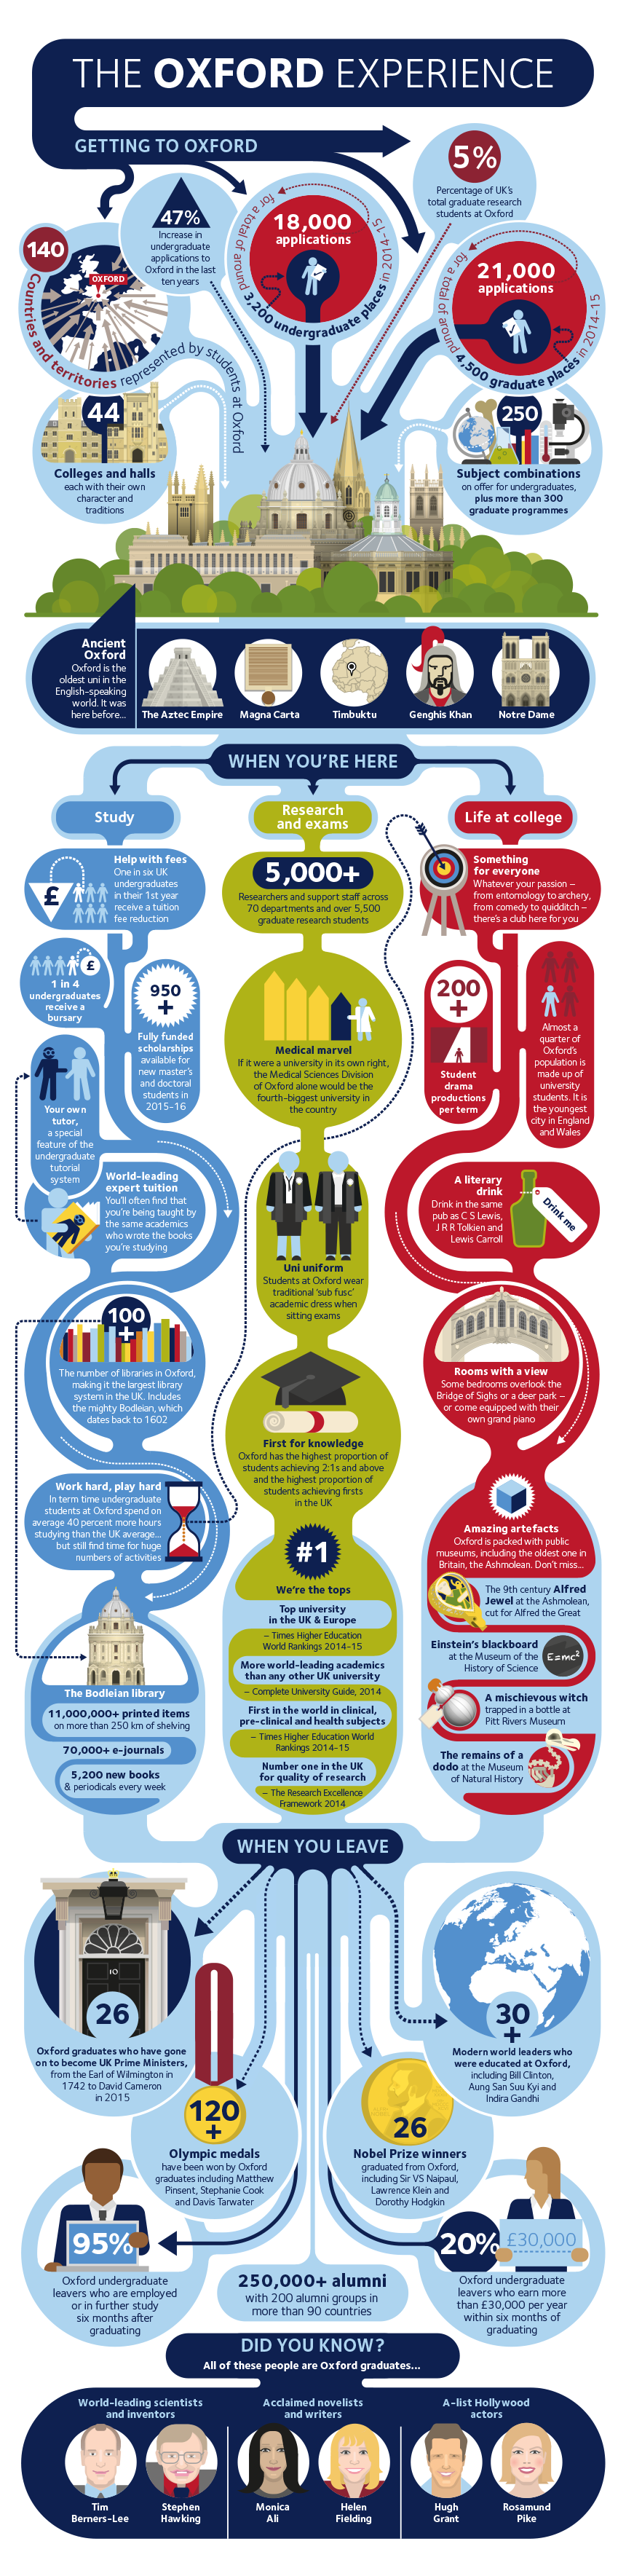 The Oxford Experience infographic